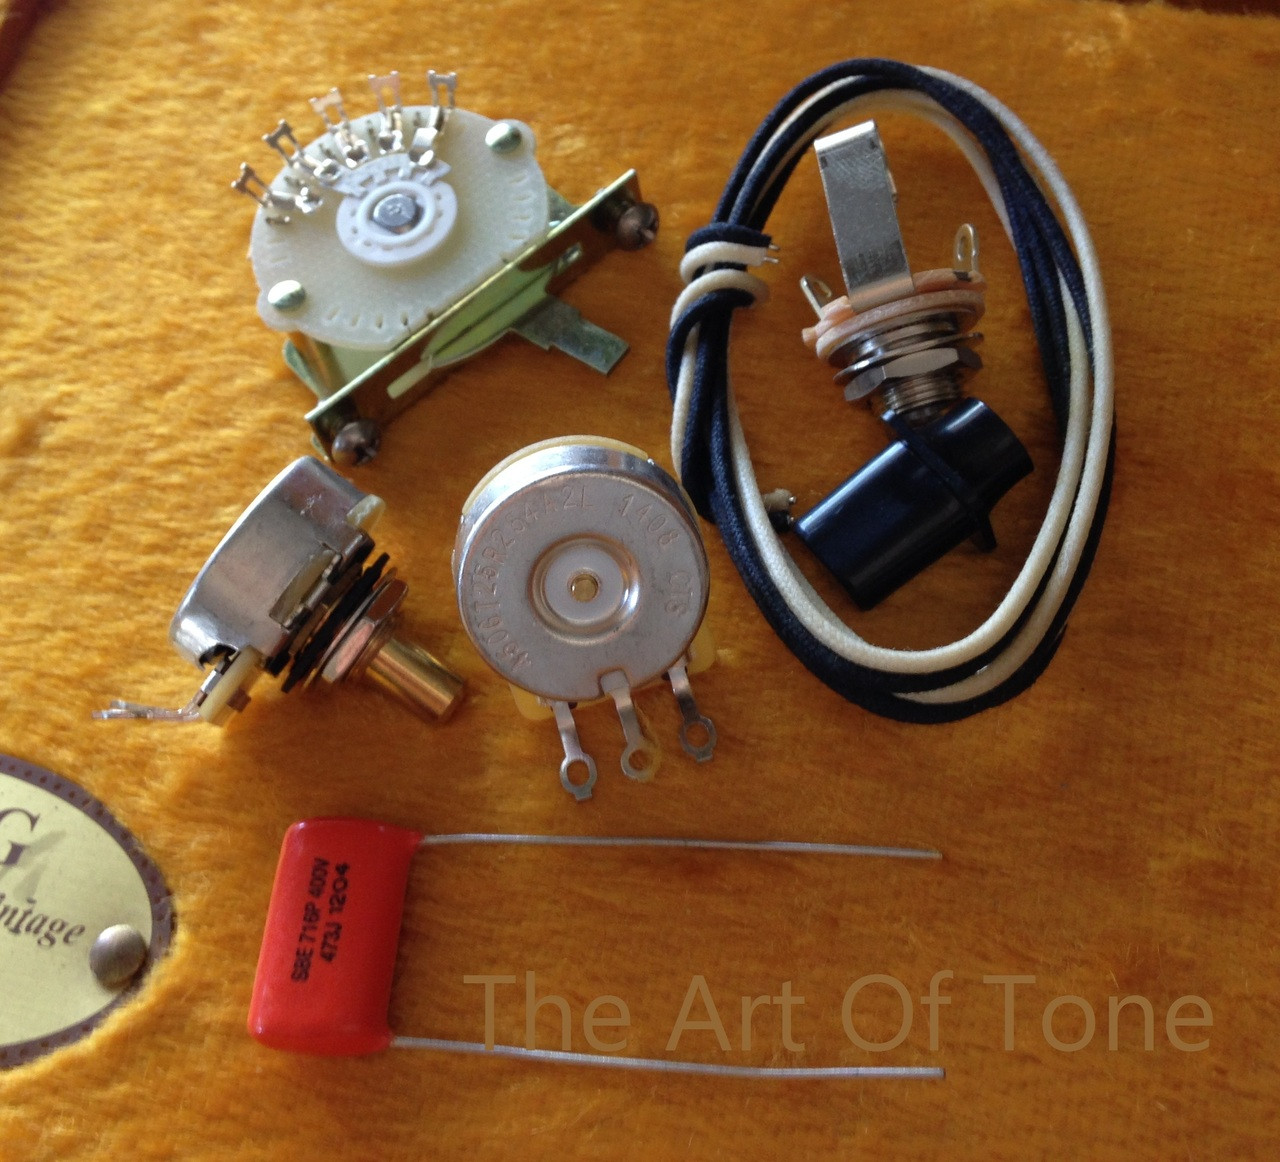 medium resolution of deluxe tele 4 way wiring kit telecaster cts 450g pots 047uf orange drop cap